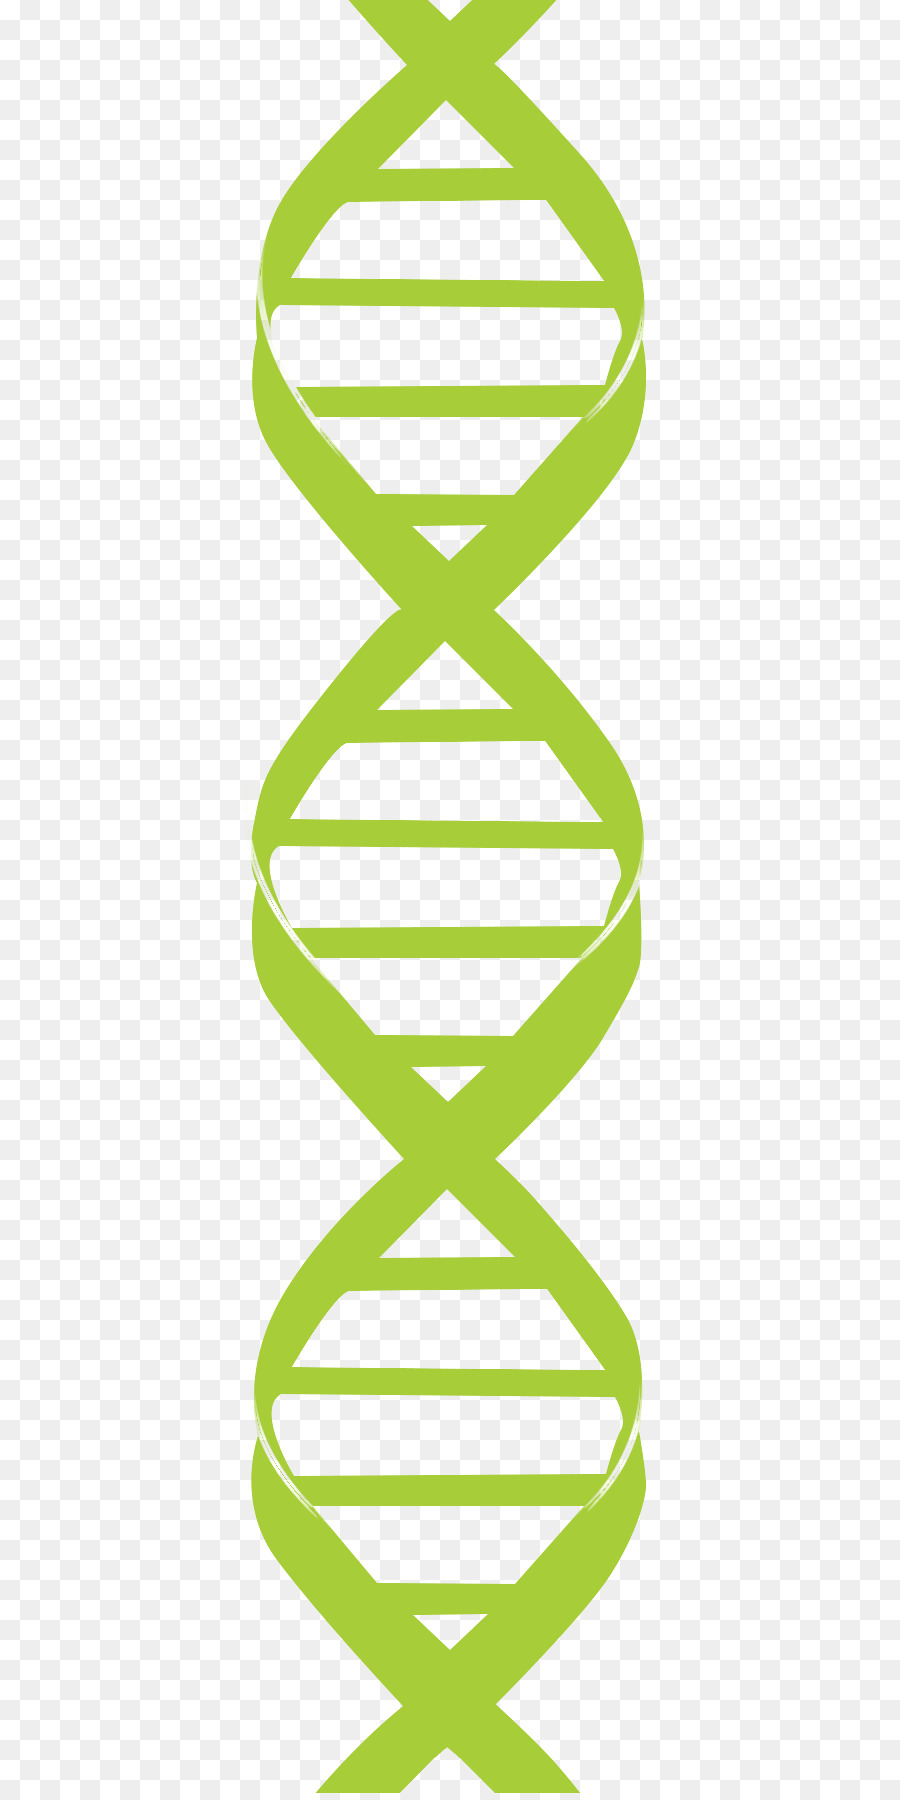 Clip art Nucleic acid double helix DNA Genetics.